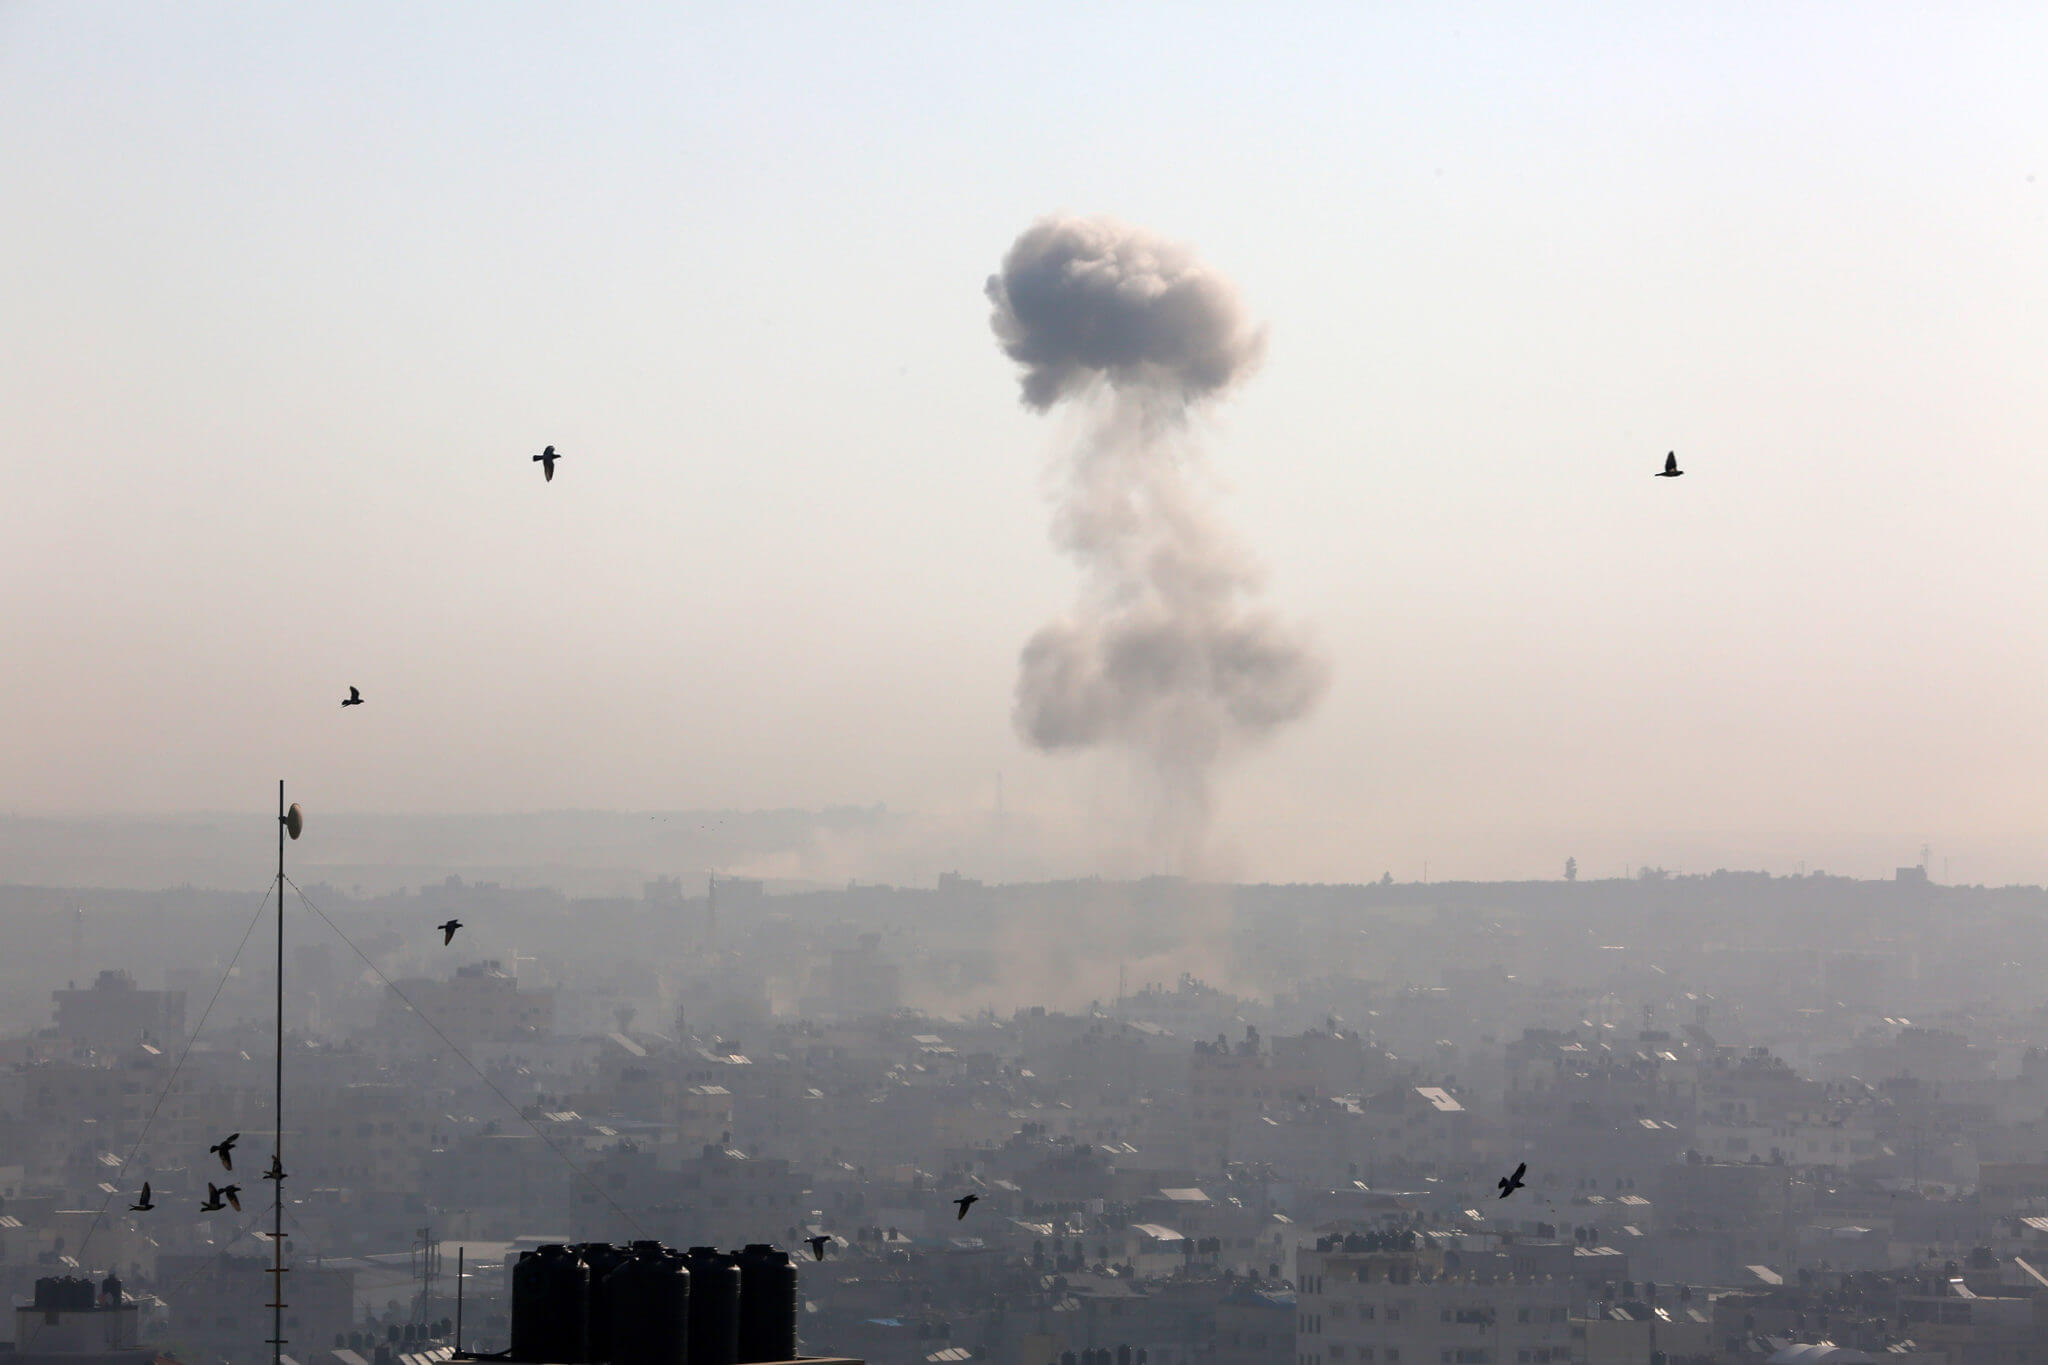 Smoke rises after an Israeli airstrike on Gaza City, November 12, 2019. (Photo: by Mohammed Zaanoun / Activestills.org)